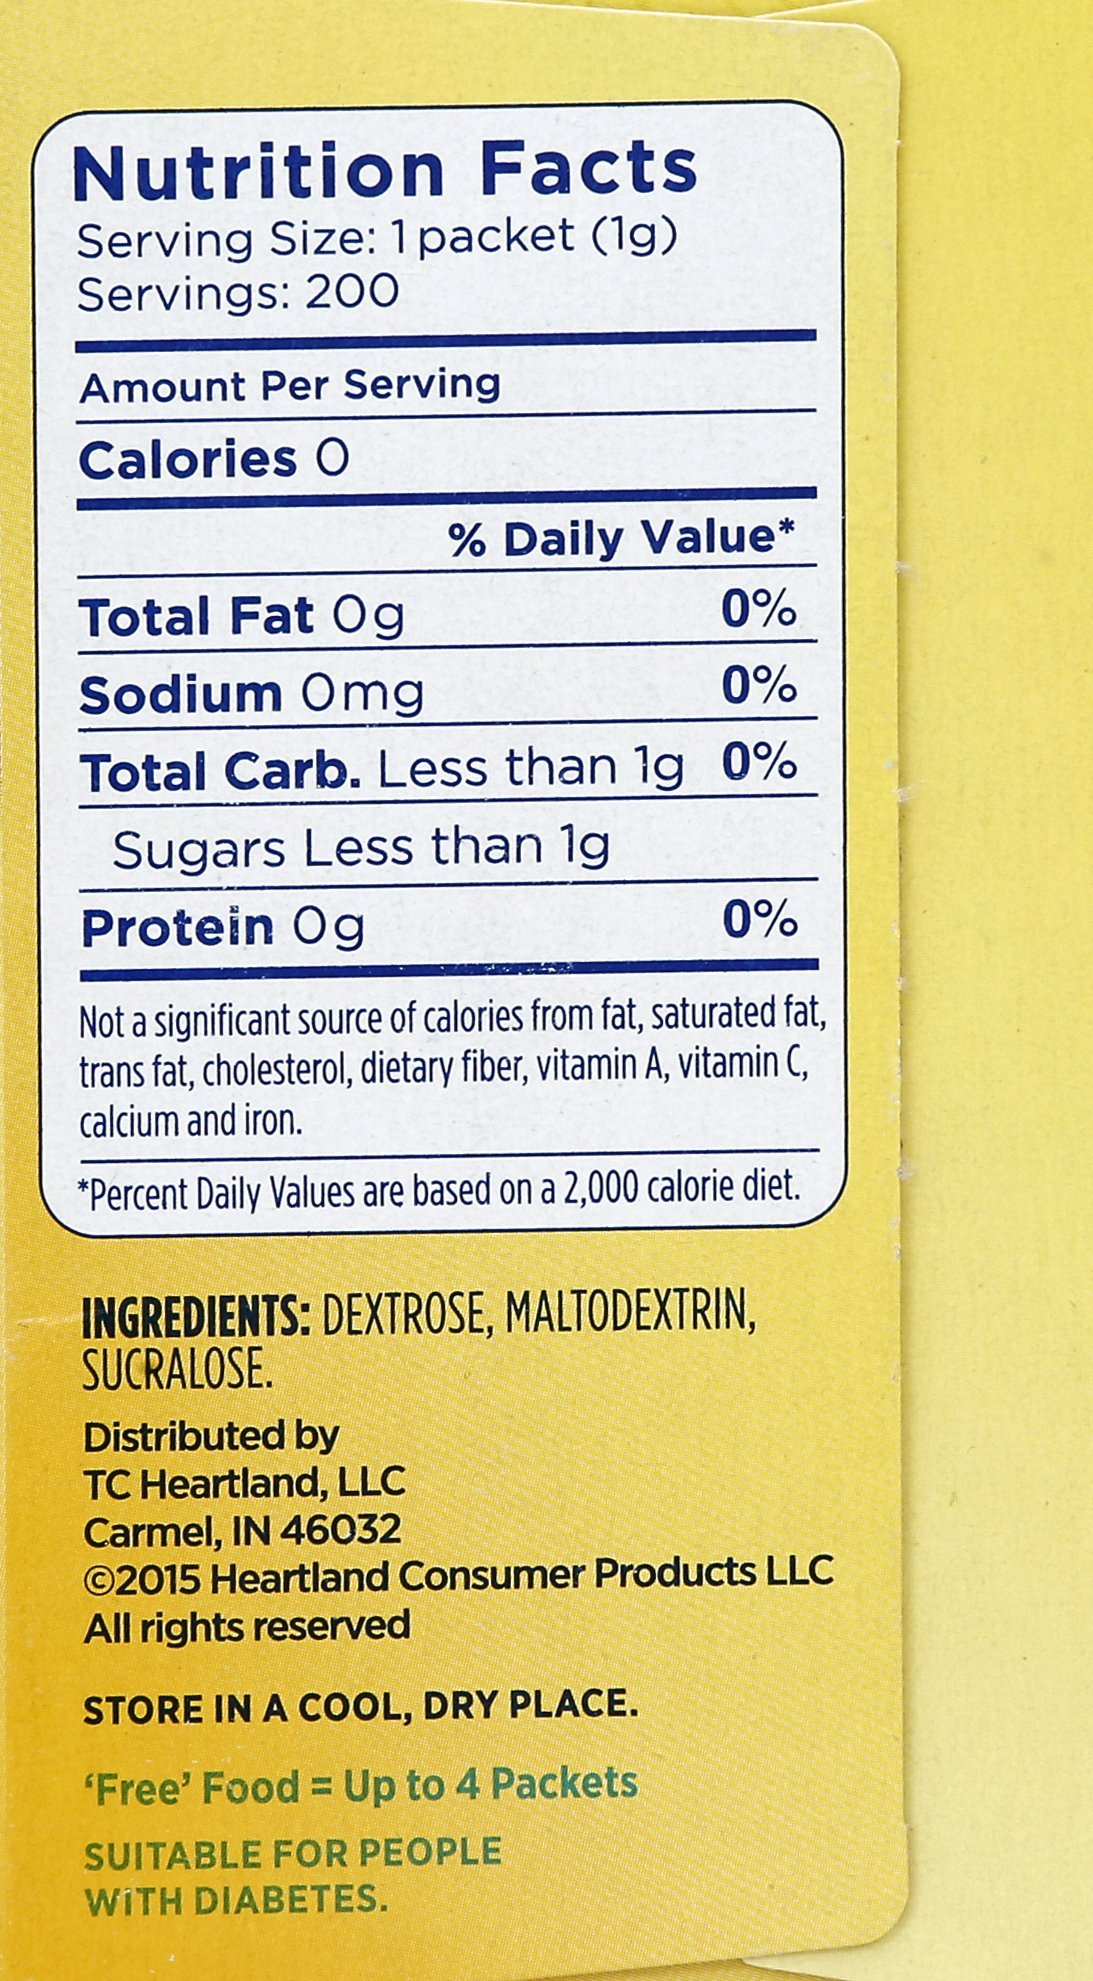 Splenda--No Calorie Sweetener--200 Count Packets, 14.1 Ounce--Sugar Substitute for Use with Coffee, Tea, Fruit, Cereal, and More by Splenda (Image #5)